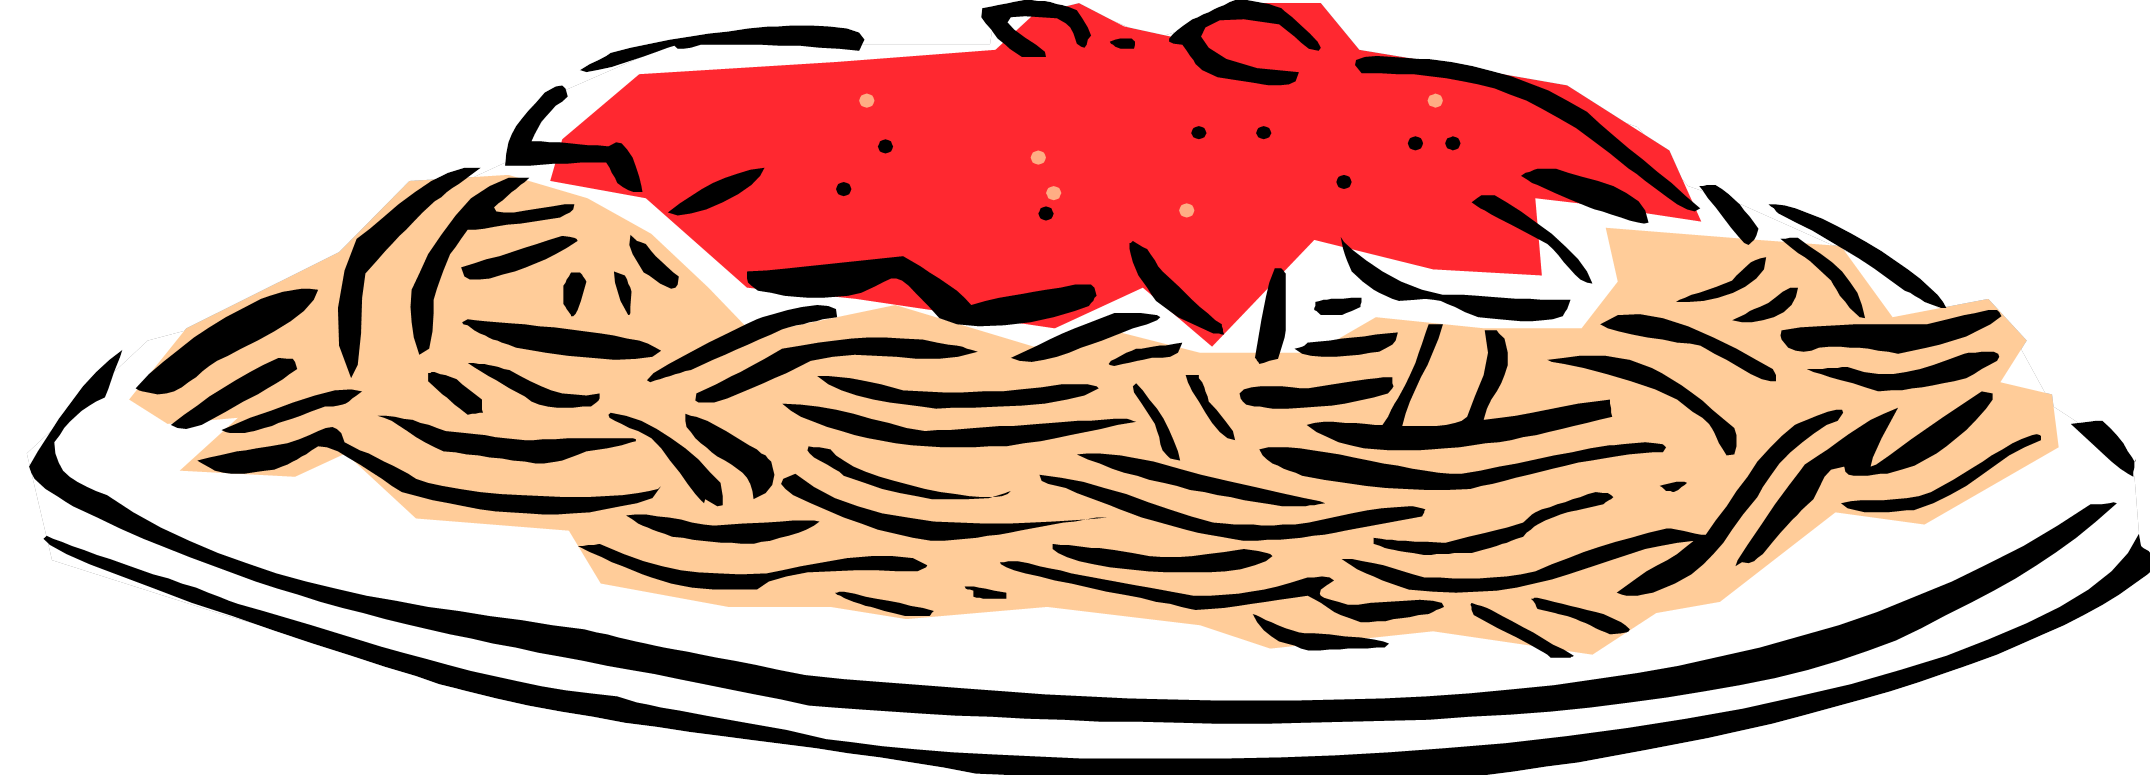 Pasta clipart free download image black and white stock Free Spaghetti Cliparts, Download Free Clip Art, Free Clip ... image black and white stock